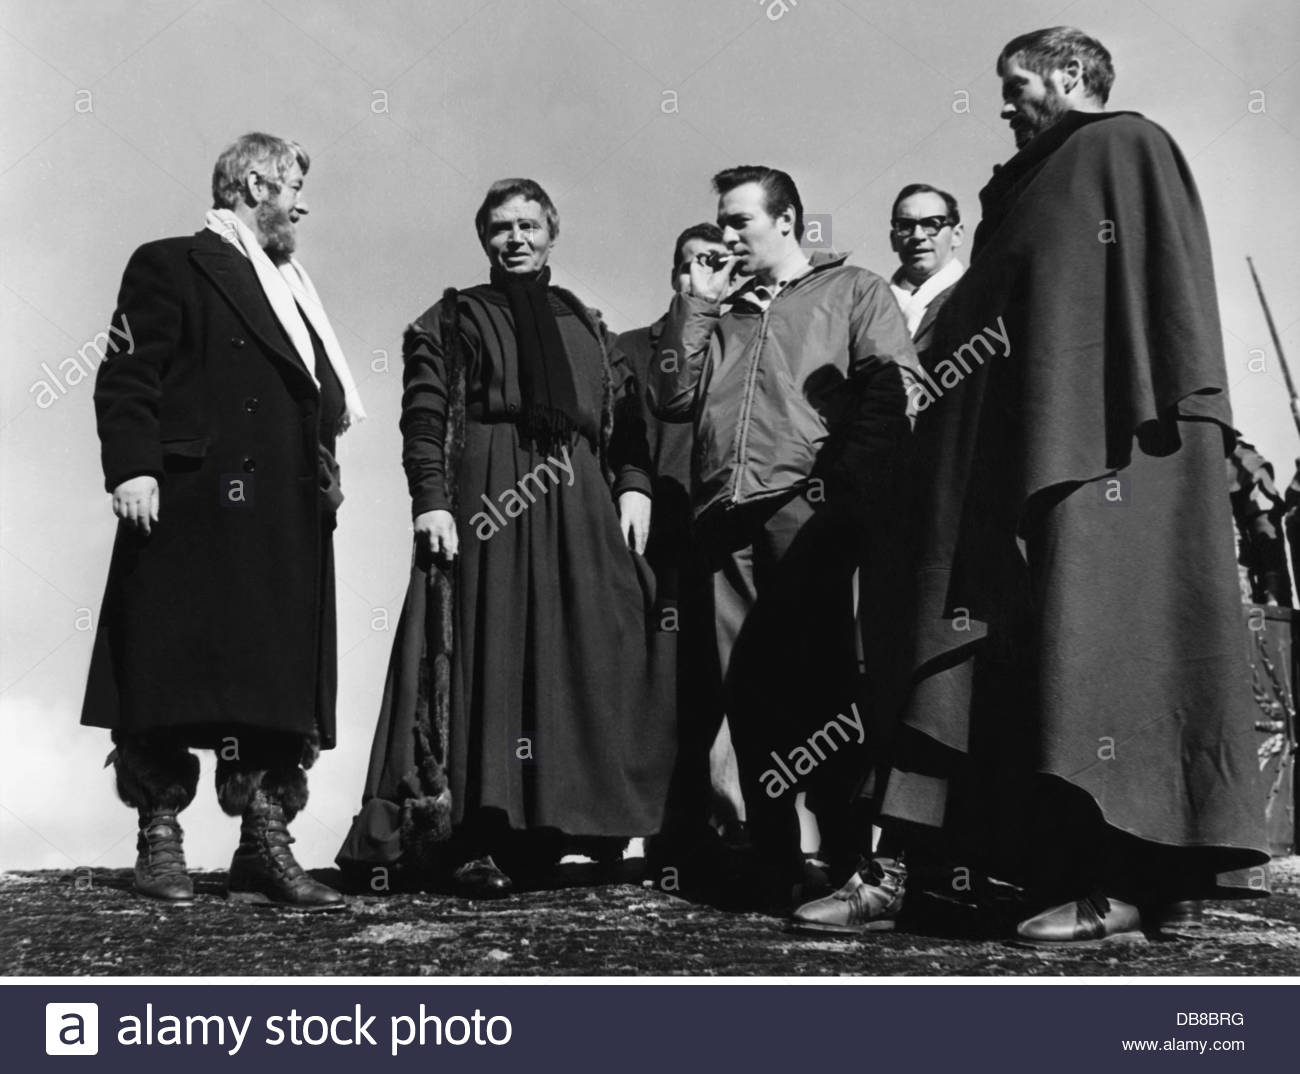 """Guinness, Alec, 2.4.1914 - 5.8.2000, British actor, during of the shooting of the movie """"The Fall of the Roman Empire"""", Stock Photo"""